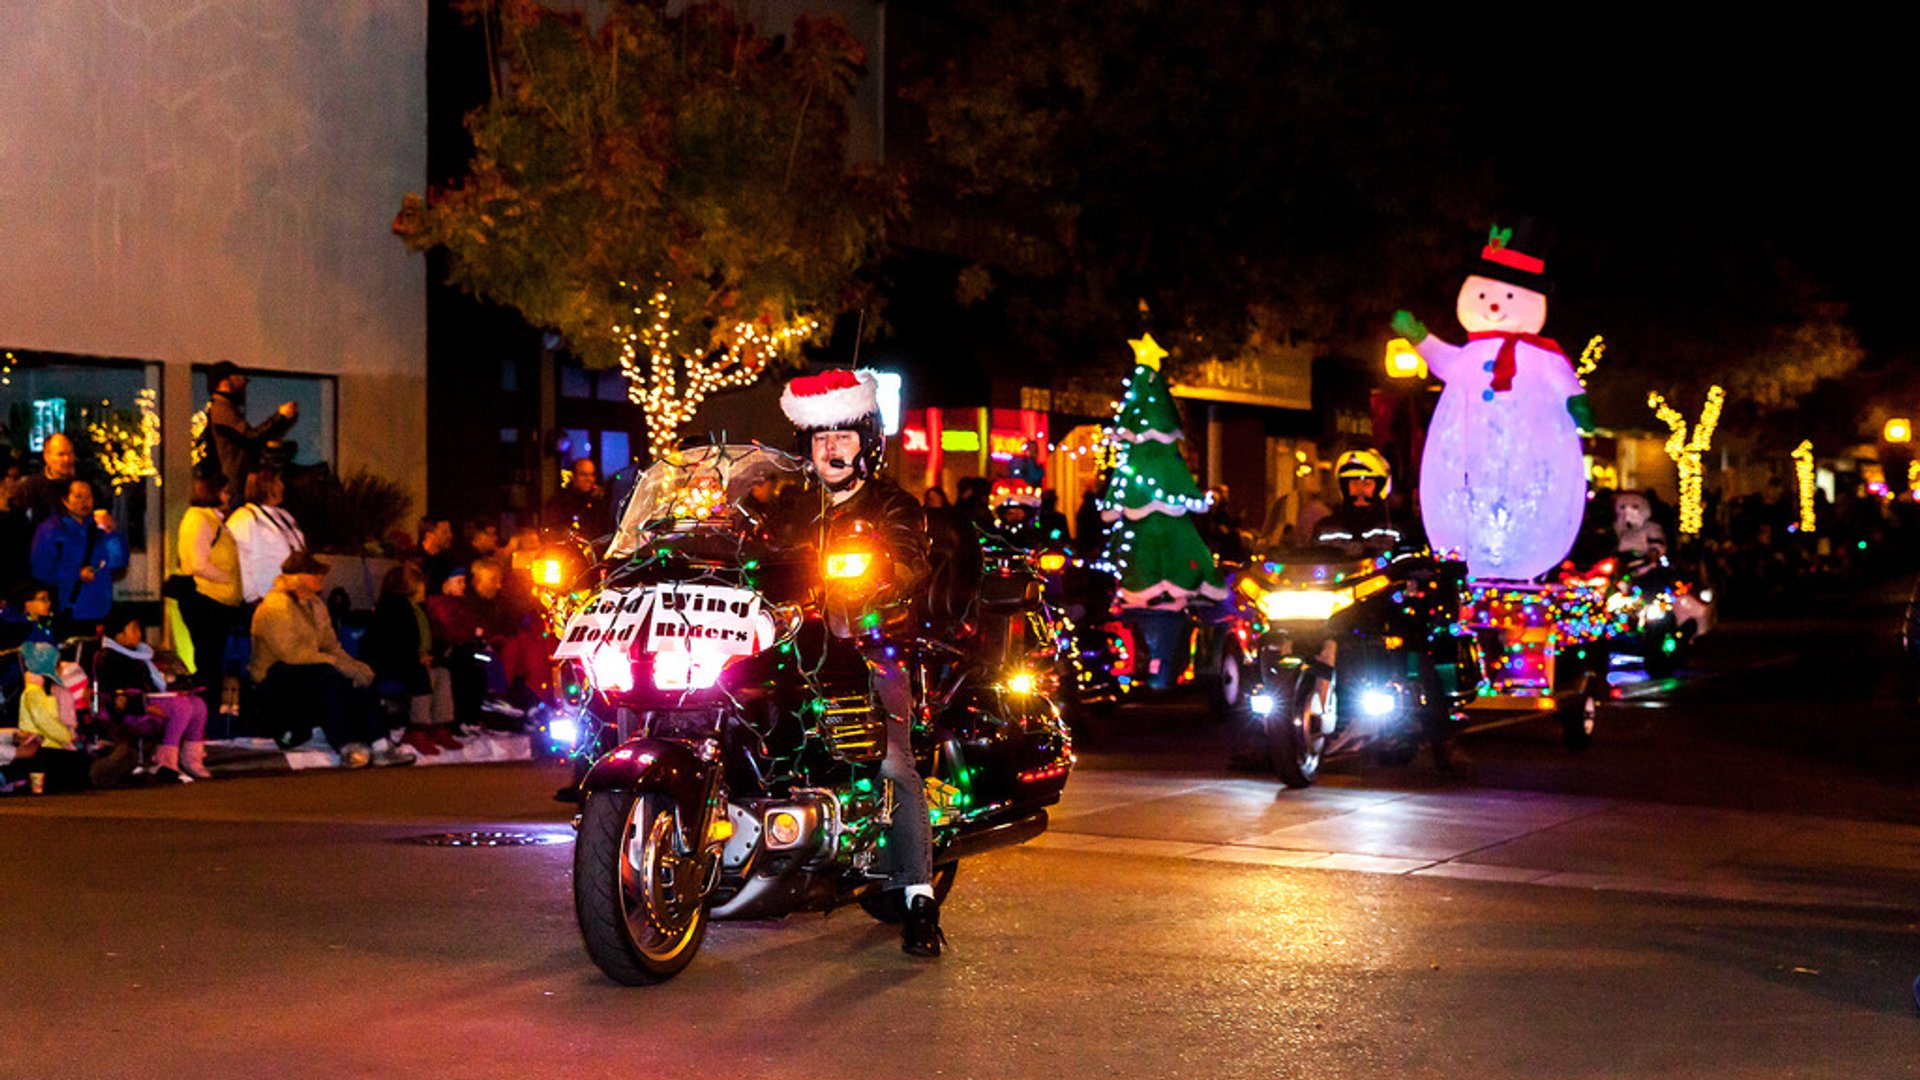 Los Altos Festival of Lights Parade in California - Best Season 2020